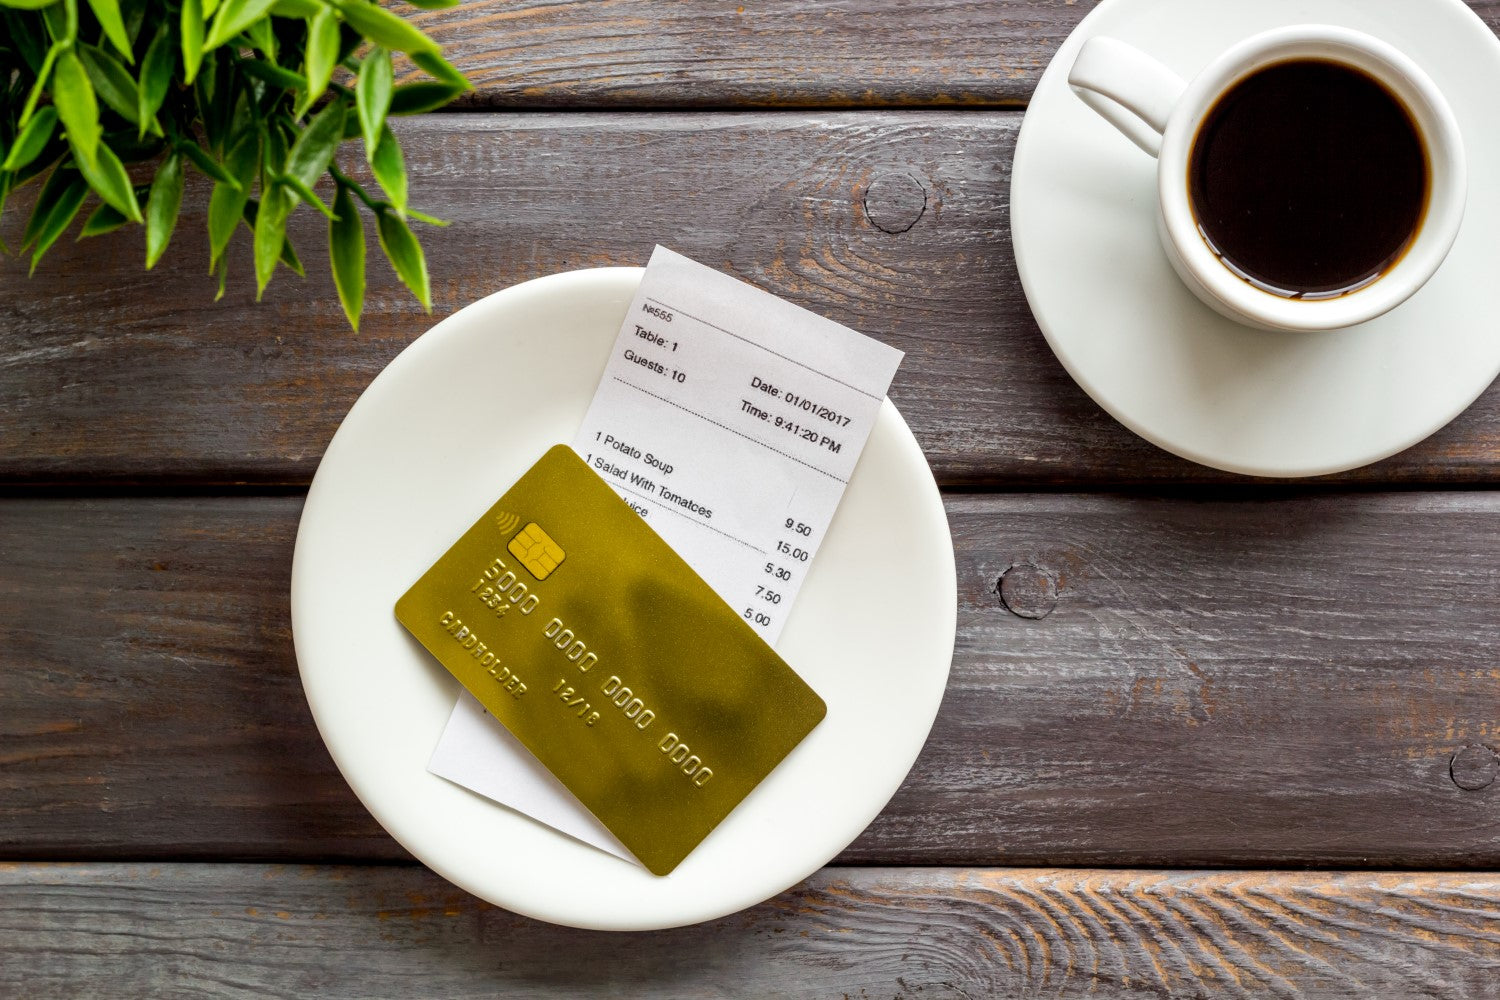 credit card, receipt and coffee